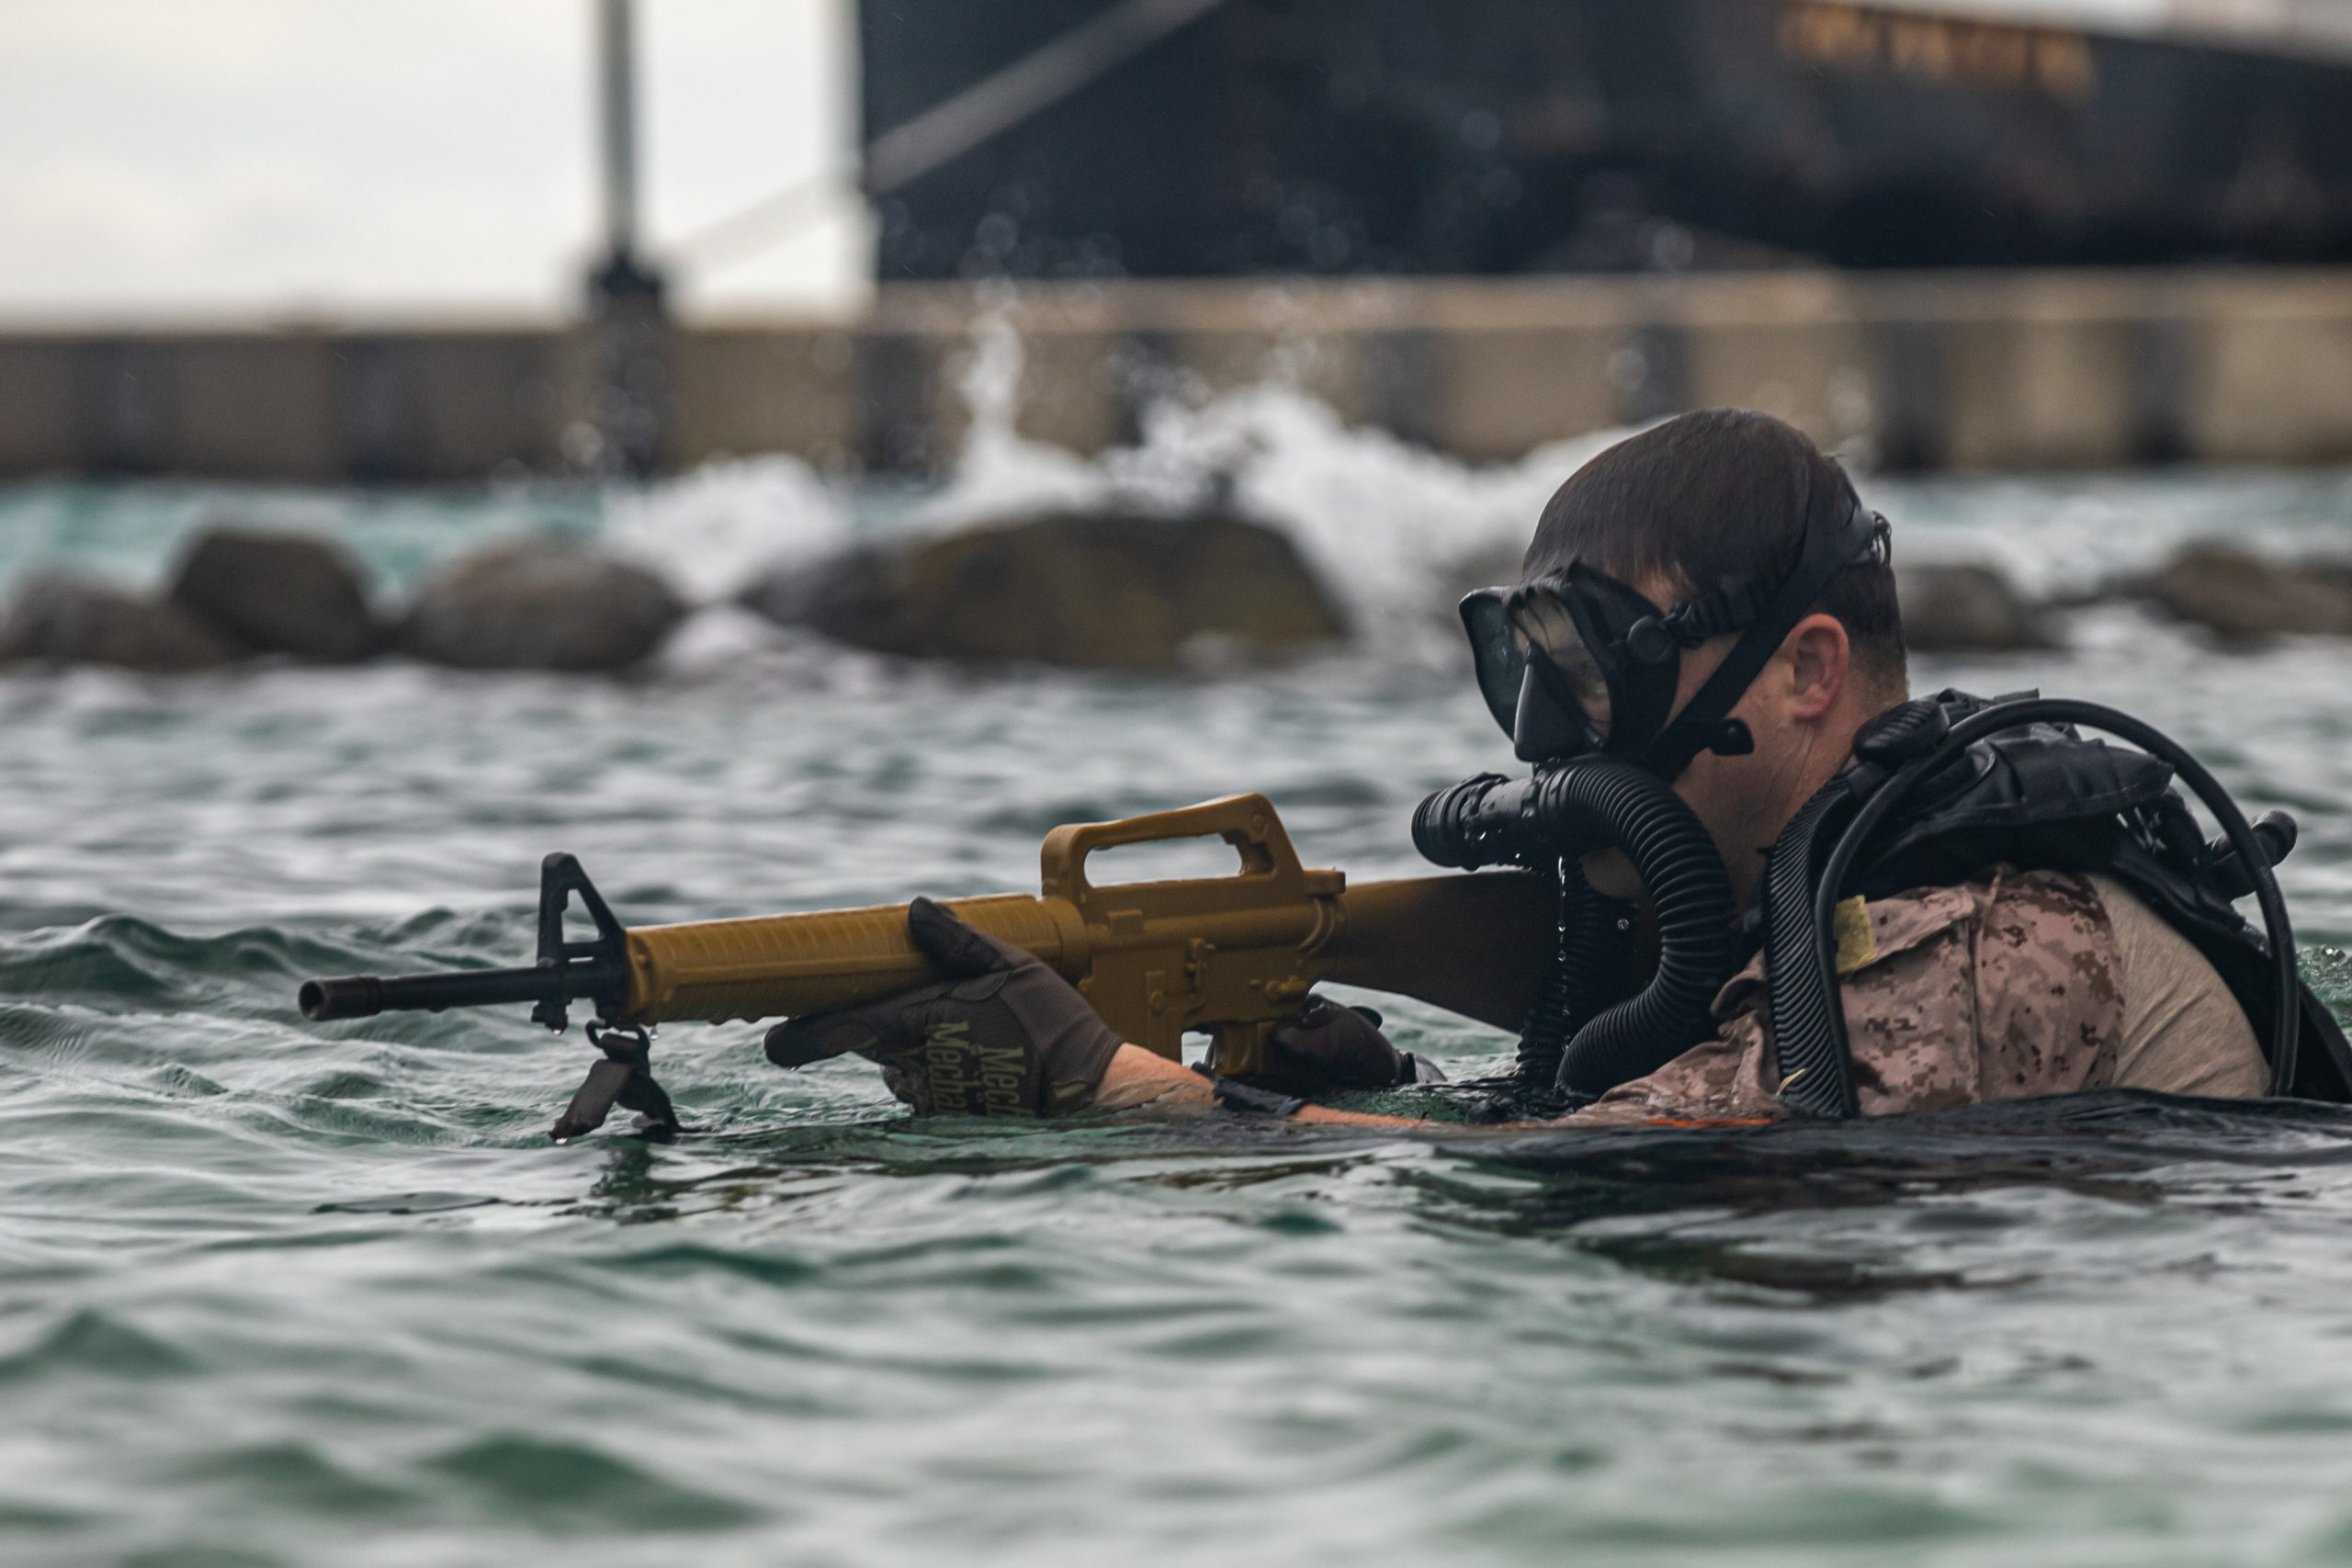 SAVANETA, Aruba (Nov. 13, 2020) U.S. Marine Corps Staff Sgt. Joseph Deblaay, a reconnaissance Marine with C Company, 2nd Reconnaissance Battalion (Recon Bn.), 2nd Marine Division (MARDIV), ascends from the water while participating in a dive training with Dutch marines with the 32nd Raiding Squadron near Netherlands Marine Barracks Savaneta, Aruba, Nov. 13, 2020. These dive skills are critical when fighting in littoral and coastal regions. 2nd Recon Bn's mastery of these skills is paramount to integrate effectively with their naval counterparts to win the next major conflict. Being able to learn from the Dutch marines in their primary area of operation helps 2nd Recon Bn. build a faster, more mobile and more lethal force when operating in diverse locations. (U.S. Marine Corps photo by Lance Cpl. Brian Bolin Jr.)